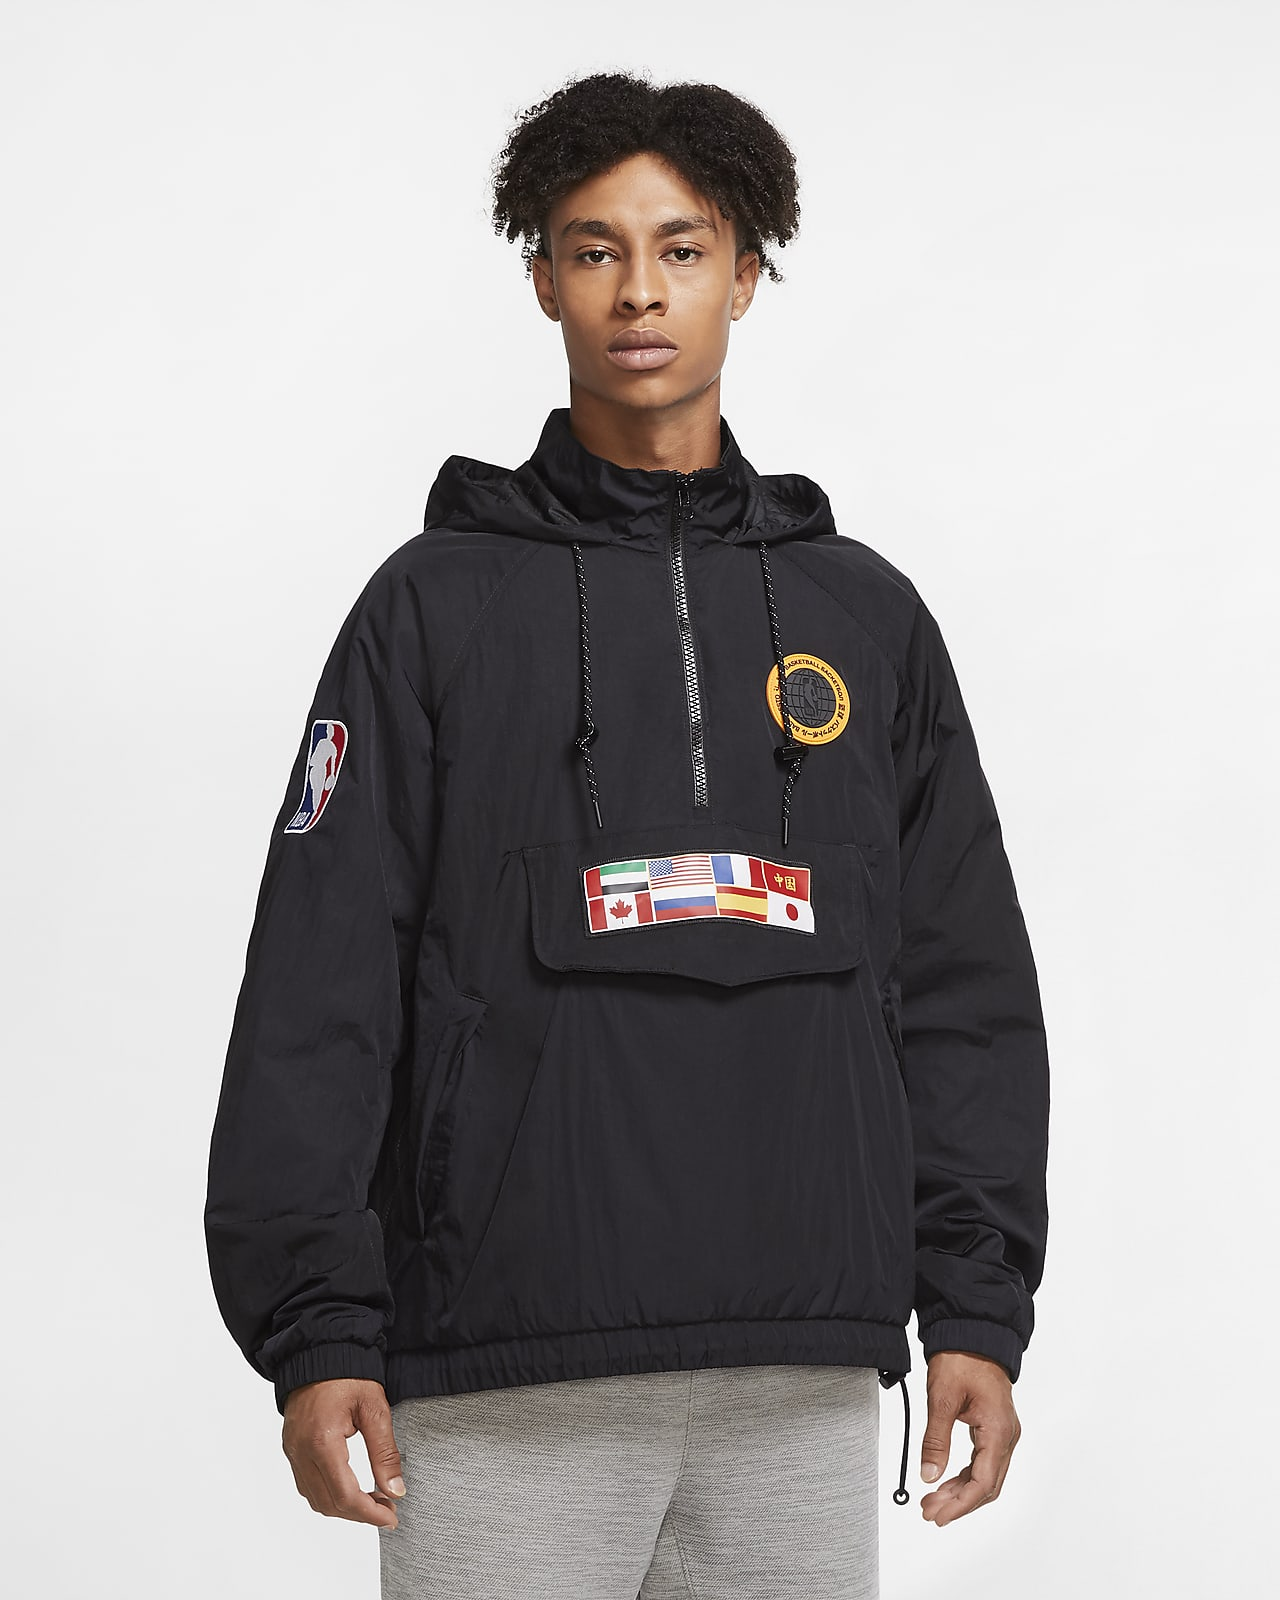 Team 31 Courtside Men's Nike NBA Jacket